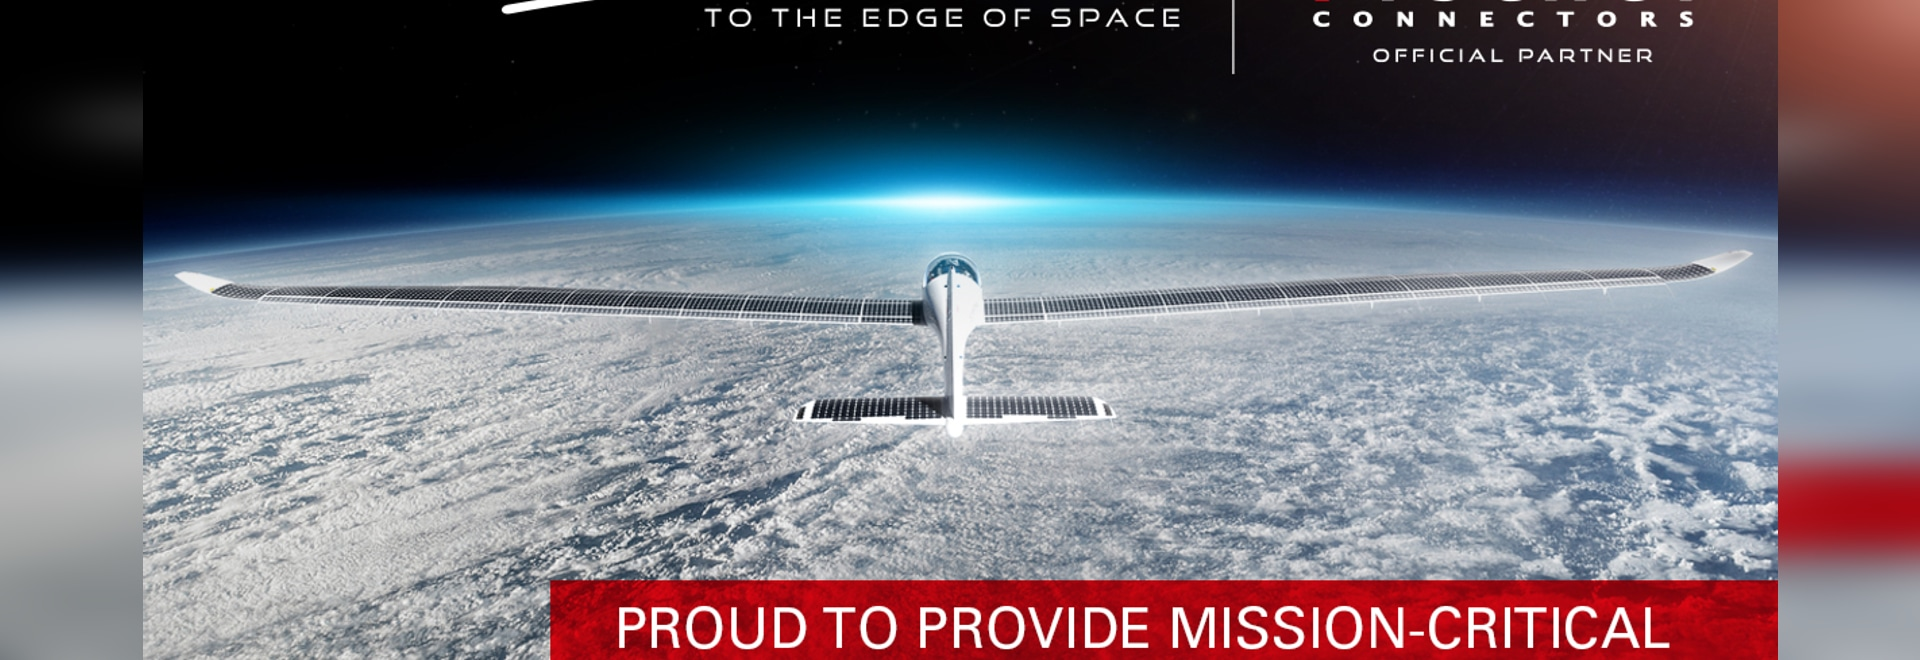 Fischer Connectors will provide mission-critical connectivity to enable 